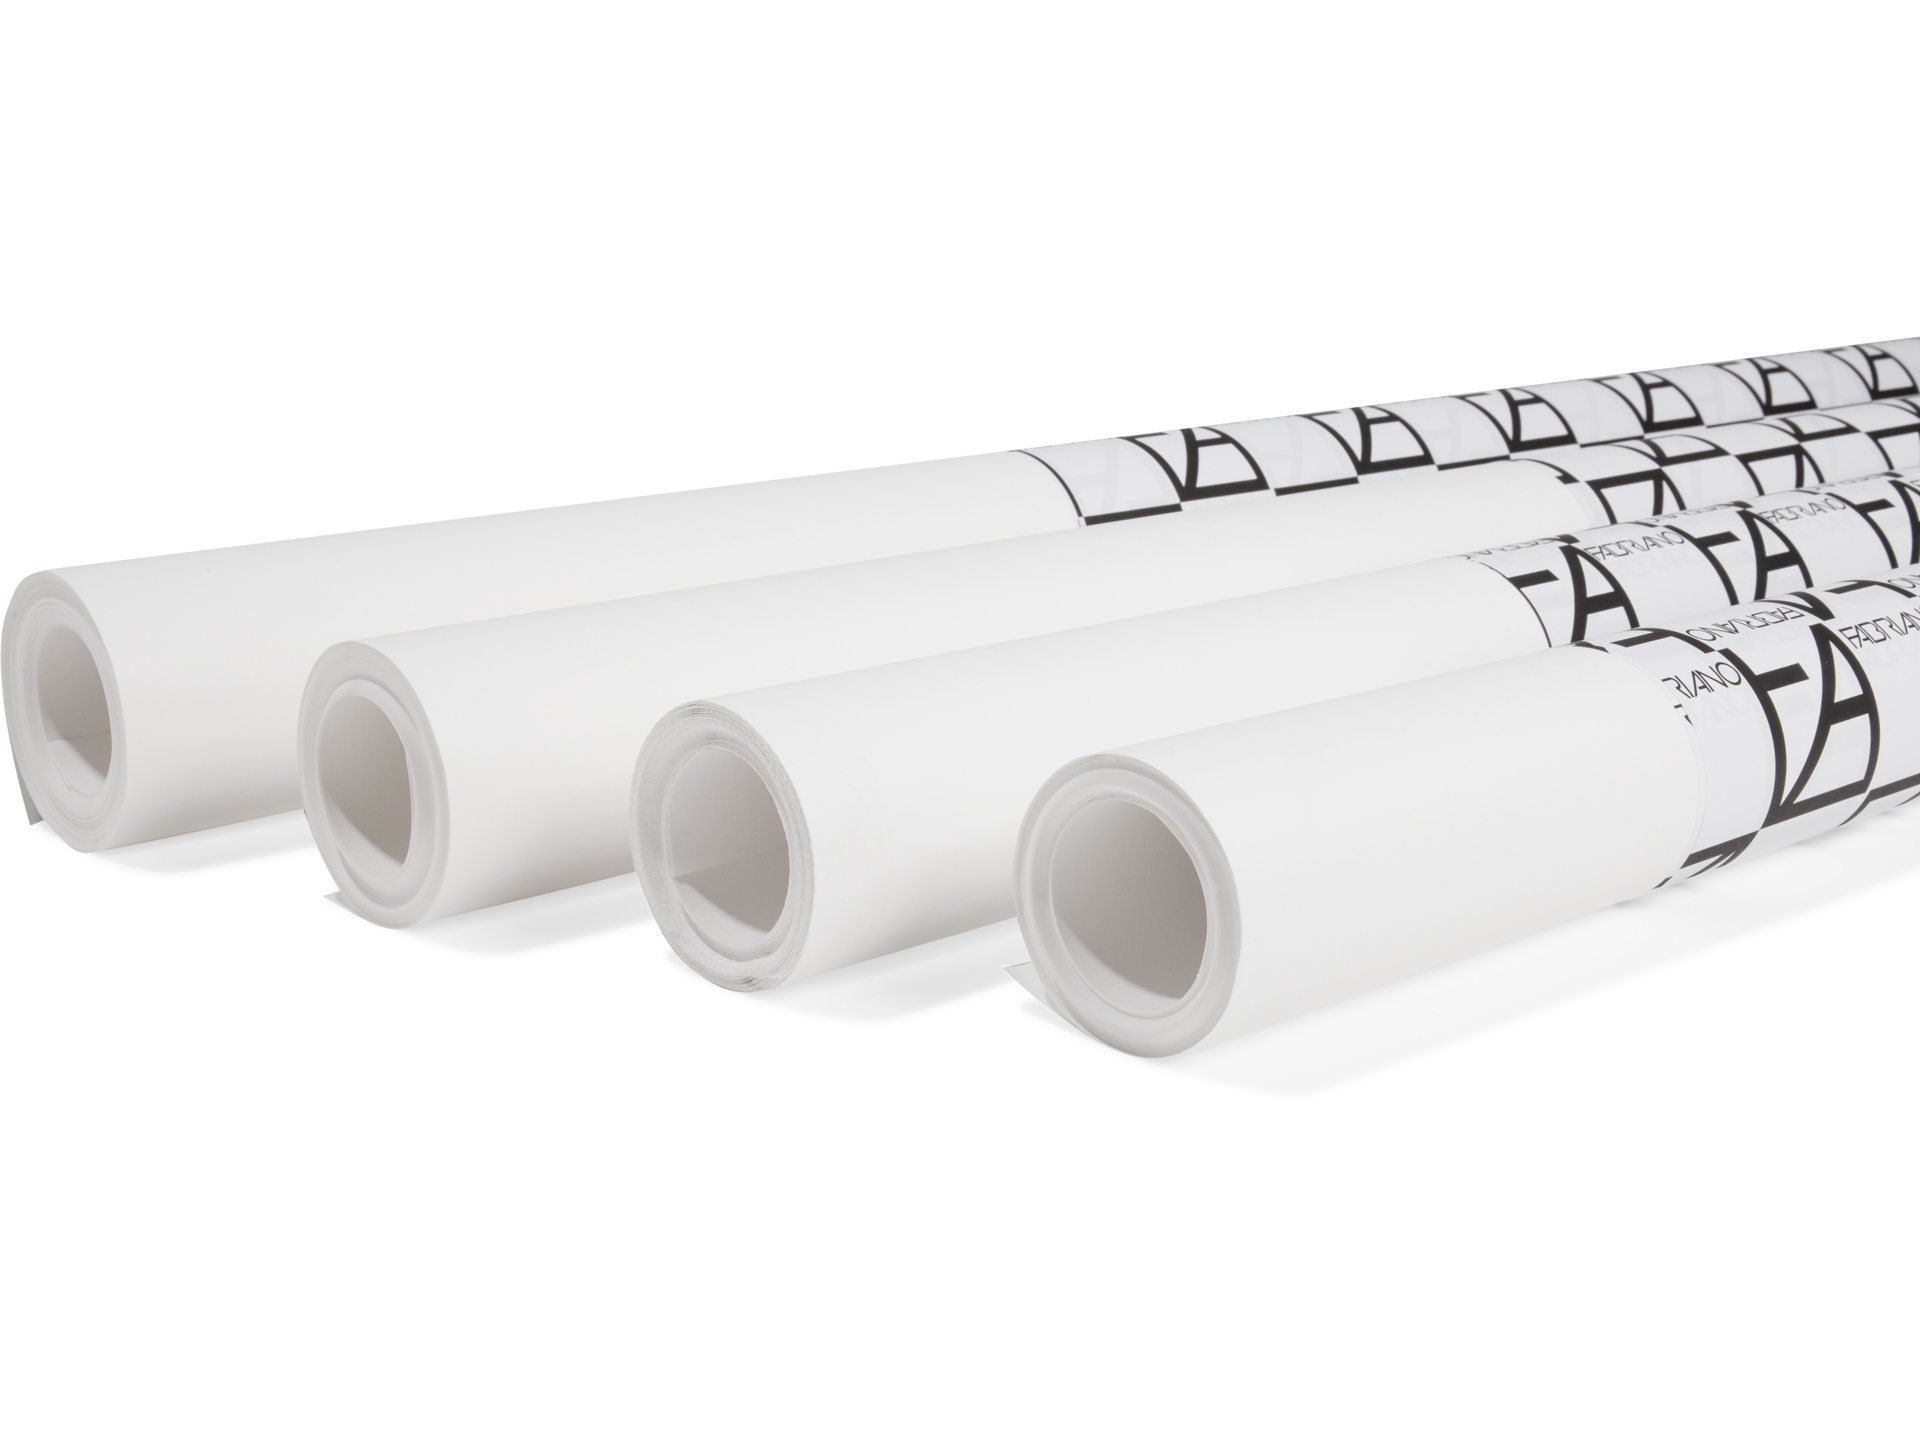 buy drawing paper roll ''accademia'', white online at modulor, Wohnzimmer dekoo